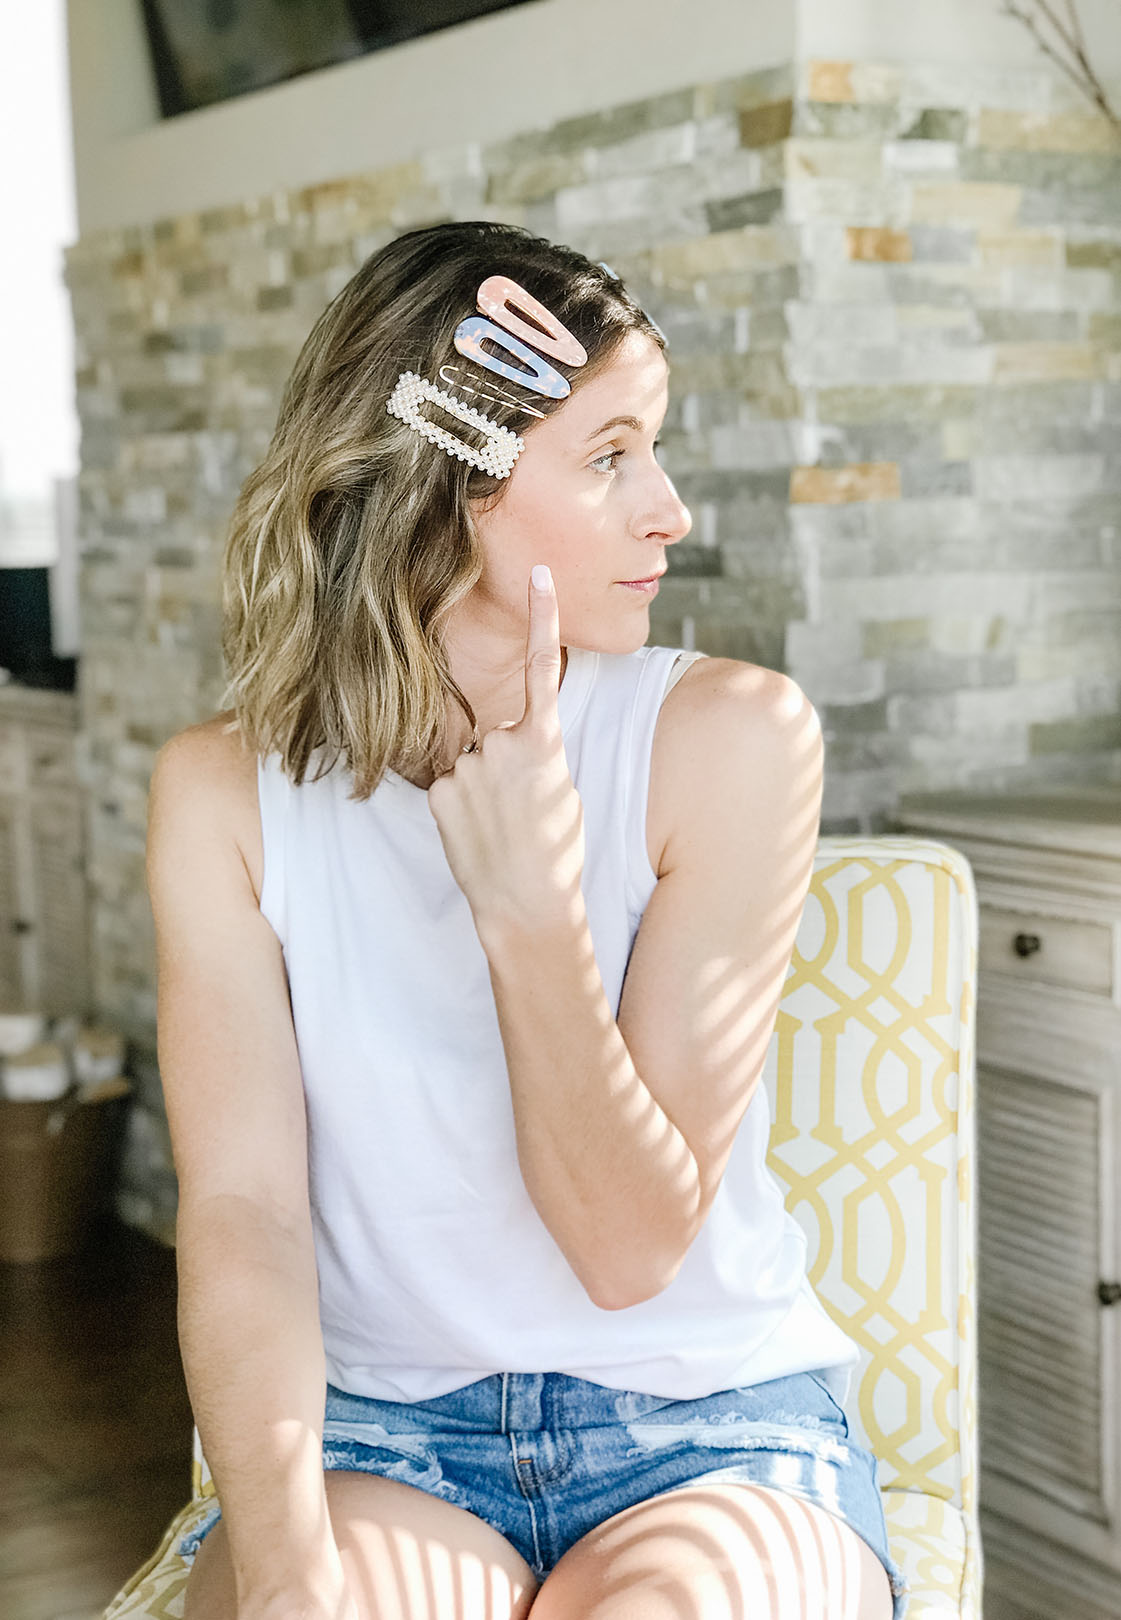 My Latest Obsession: Hair Clips